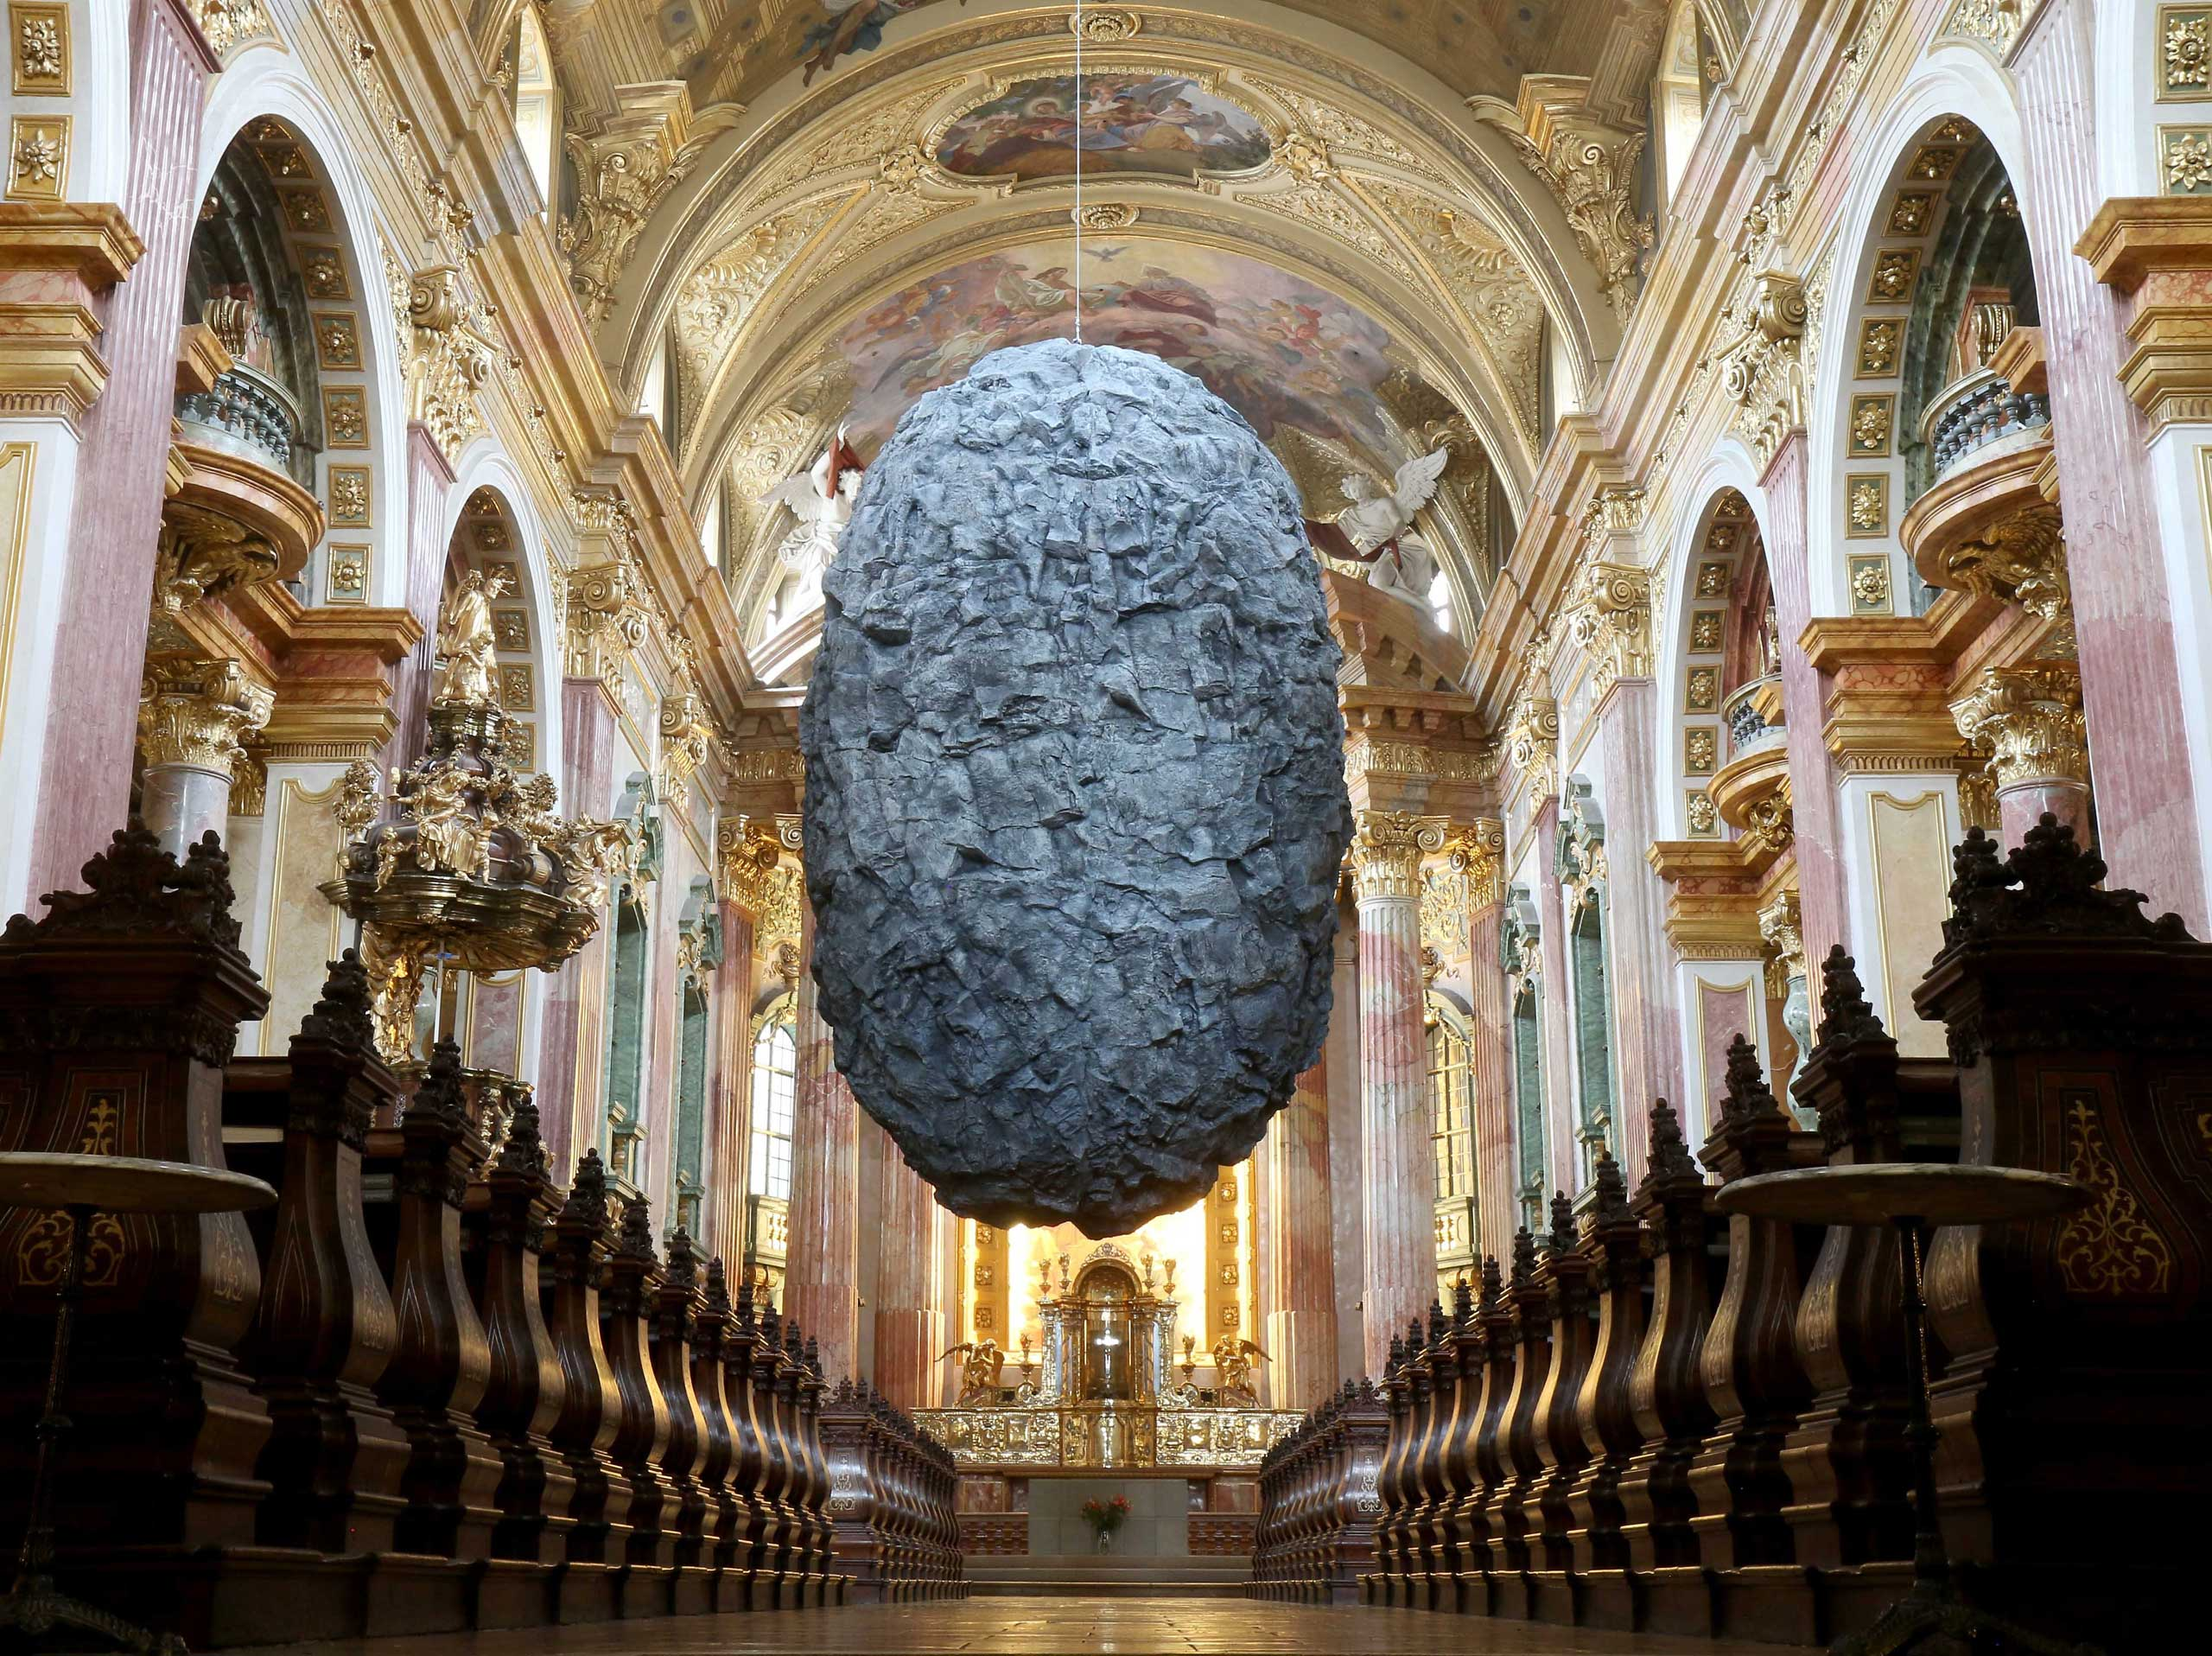 Nov. 25, 2014. A boulder plastic made of synthetic material called To be in Limbo hangs from the ceiling of the 66 ft. high Jesuit Church in Vienna. The sculpture from the artists group Steinbrener/Dempf and Huber is to symbolize faith and its threatening moments.